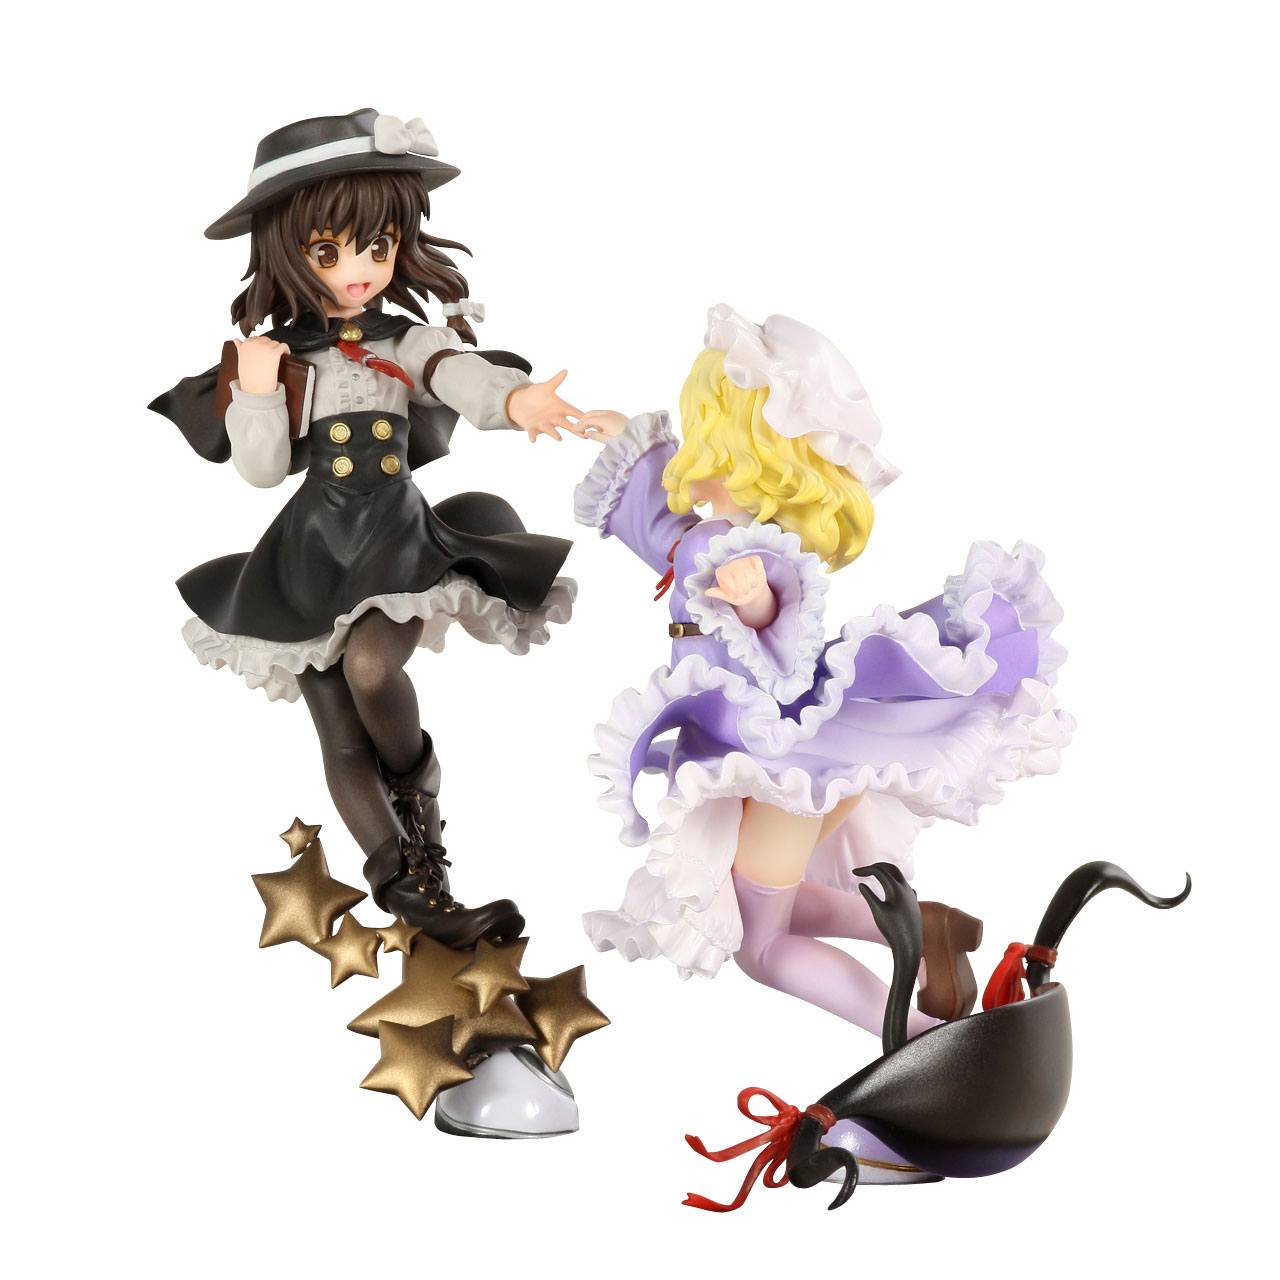 ZUN's Music Collection PVC Statue Secret Sealing Club Renko Usami & Maribel Hearn 13 cm